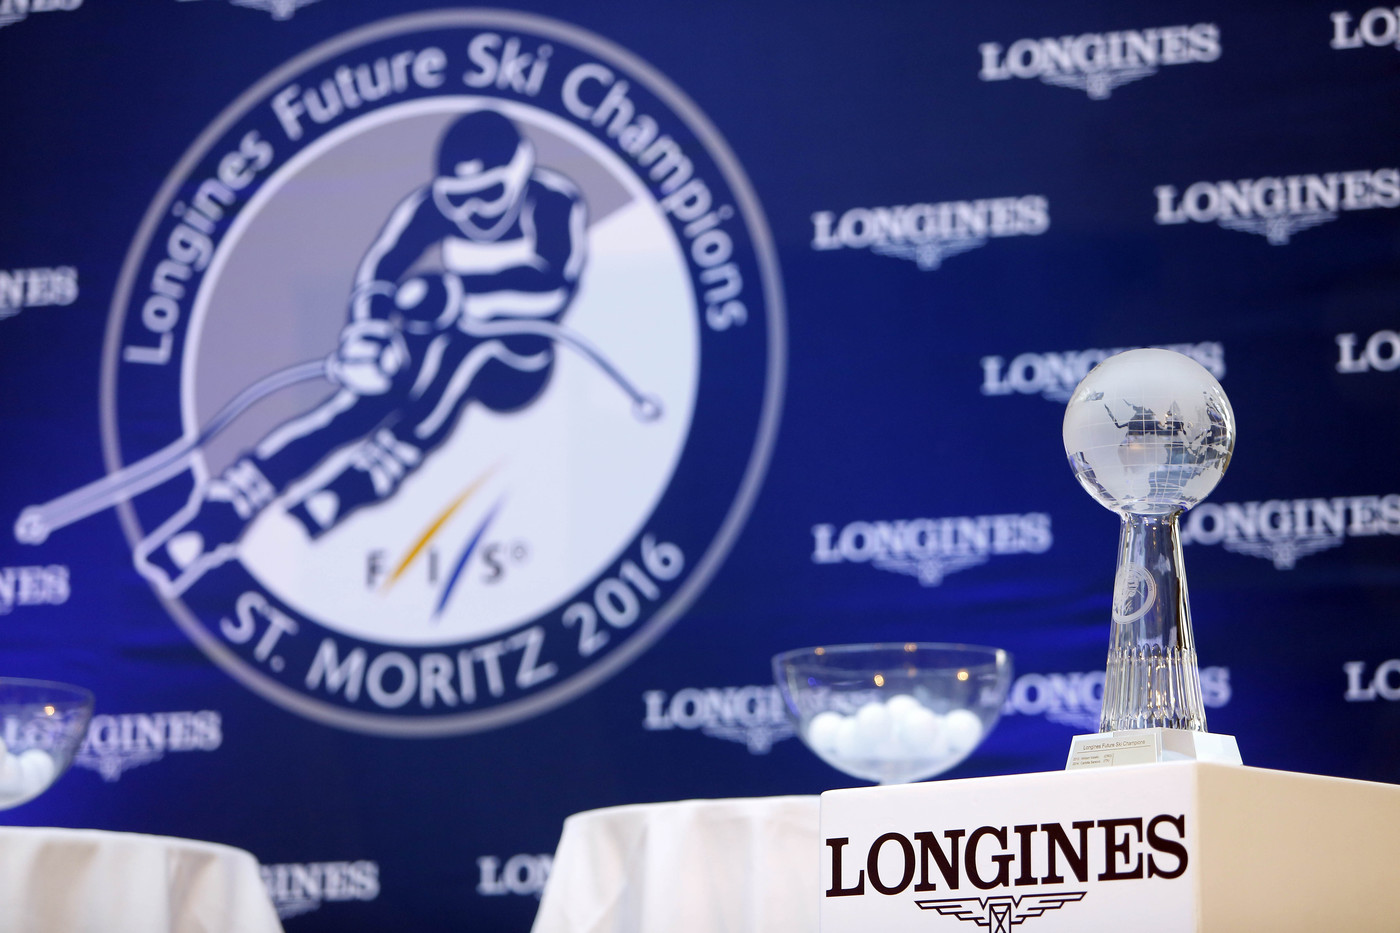 Longines Alpine Skiing Event: A new venue for the third edition of the Longines Future Ski Champions 10